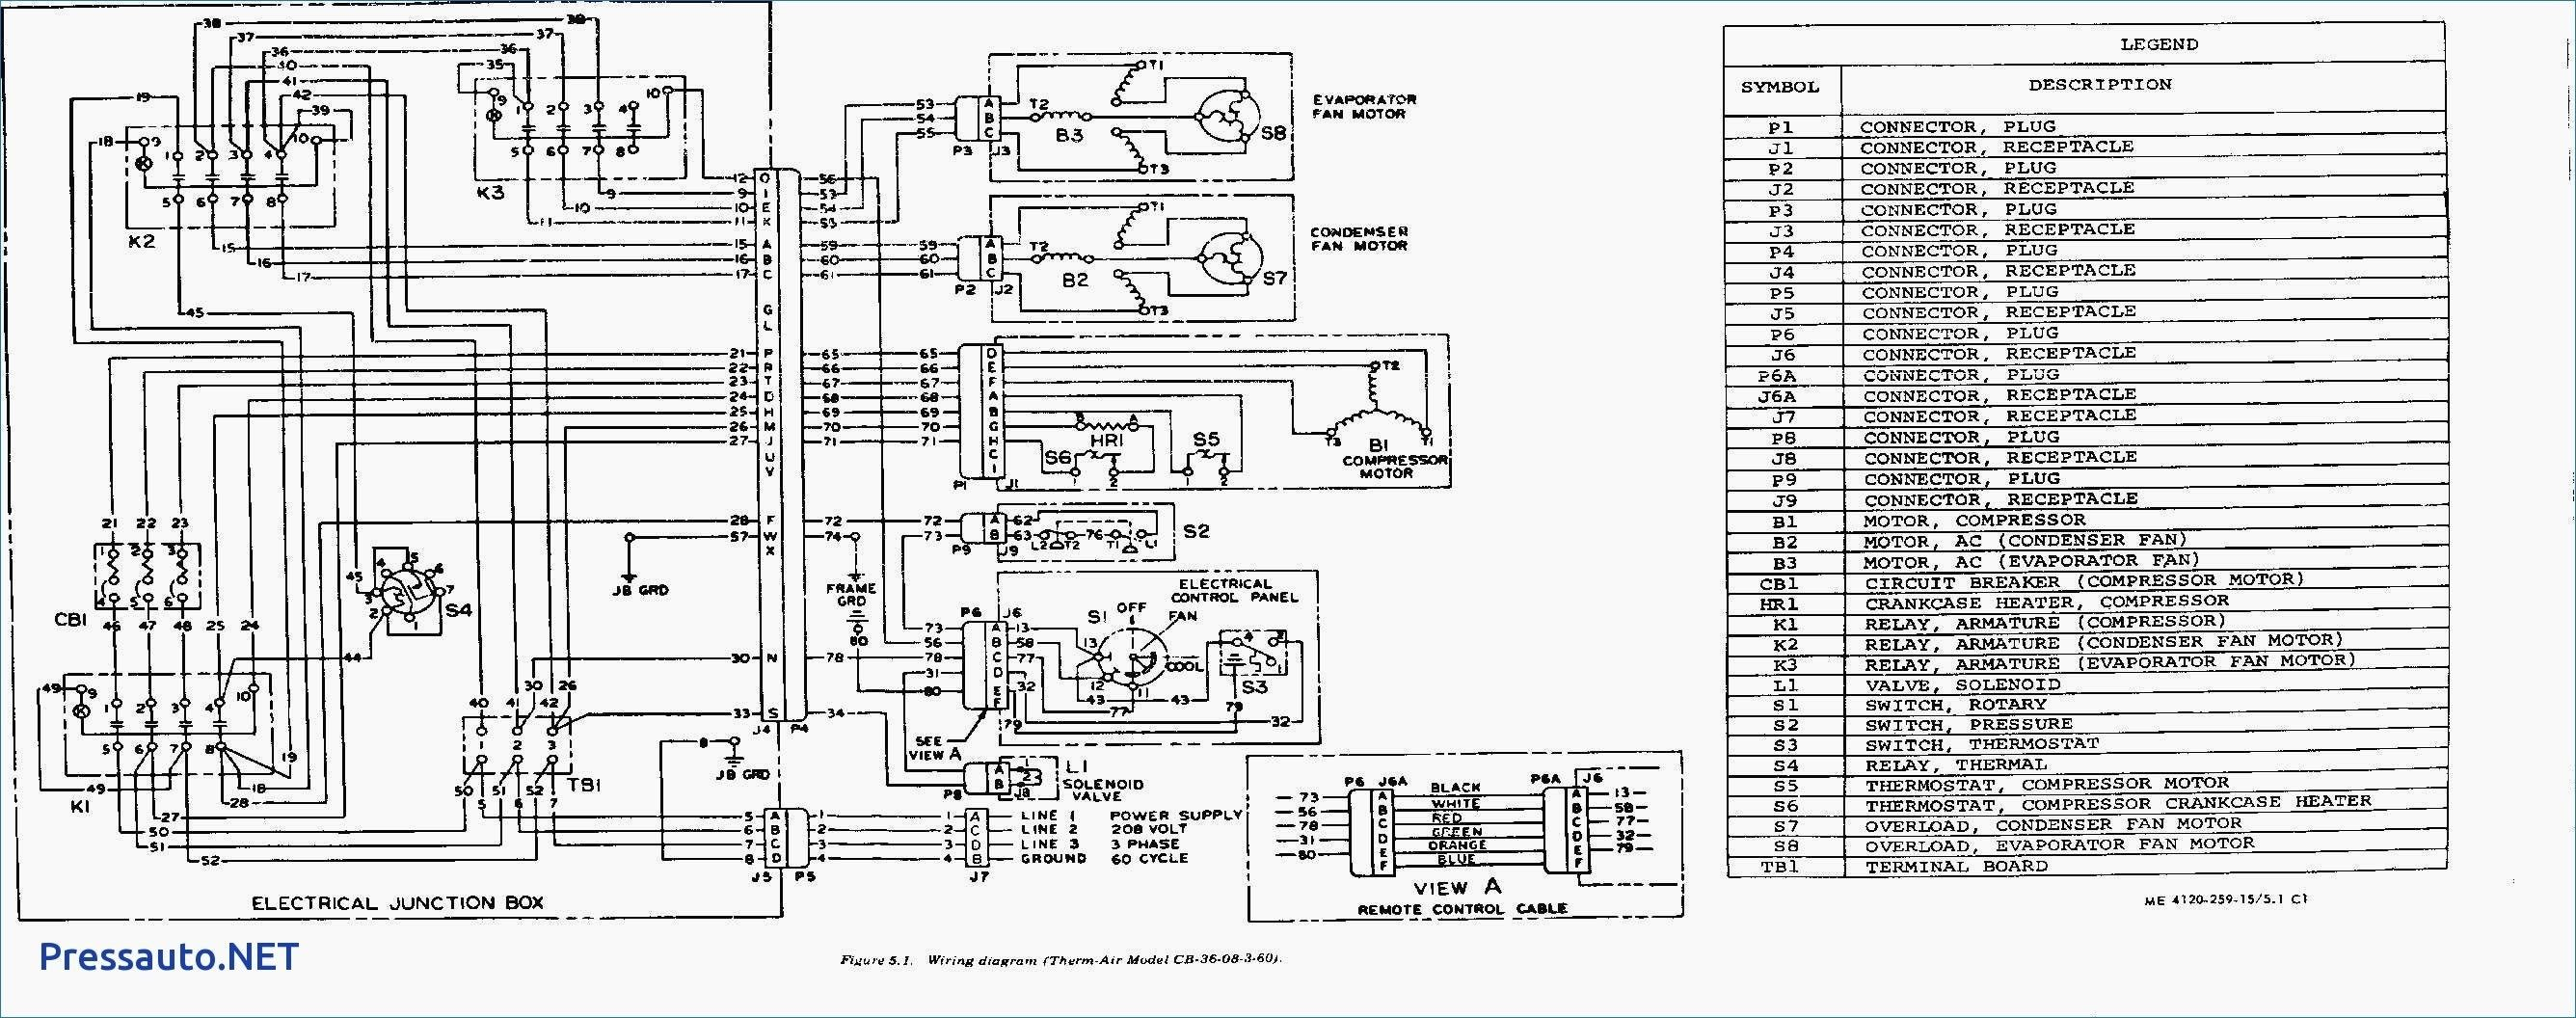 New Electric Diagram Diagram Wiringdiagram Diagramming Diagramm Visuals Visualisation Graphical Check More At Https Th Trane Diagram Thermostat Wiring